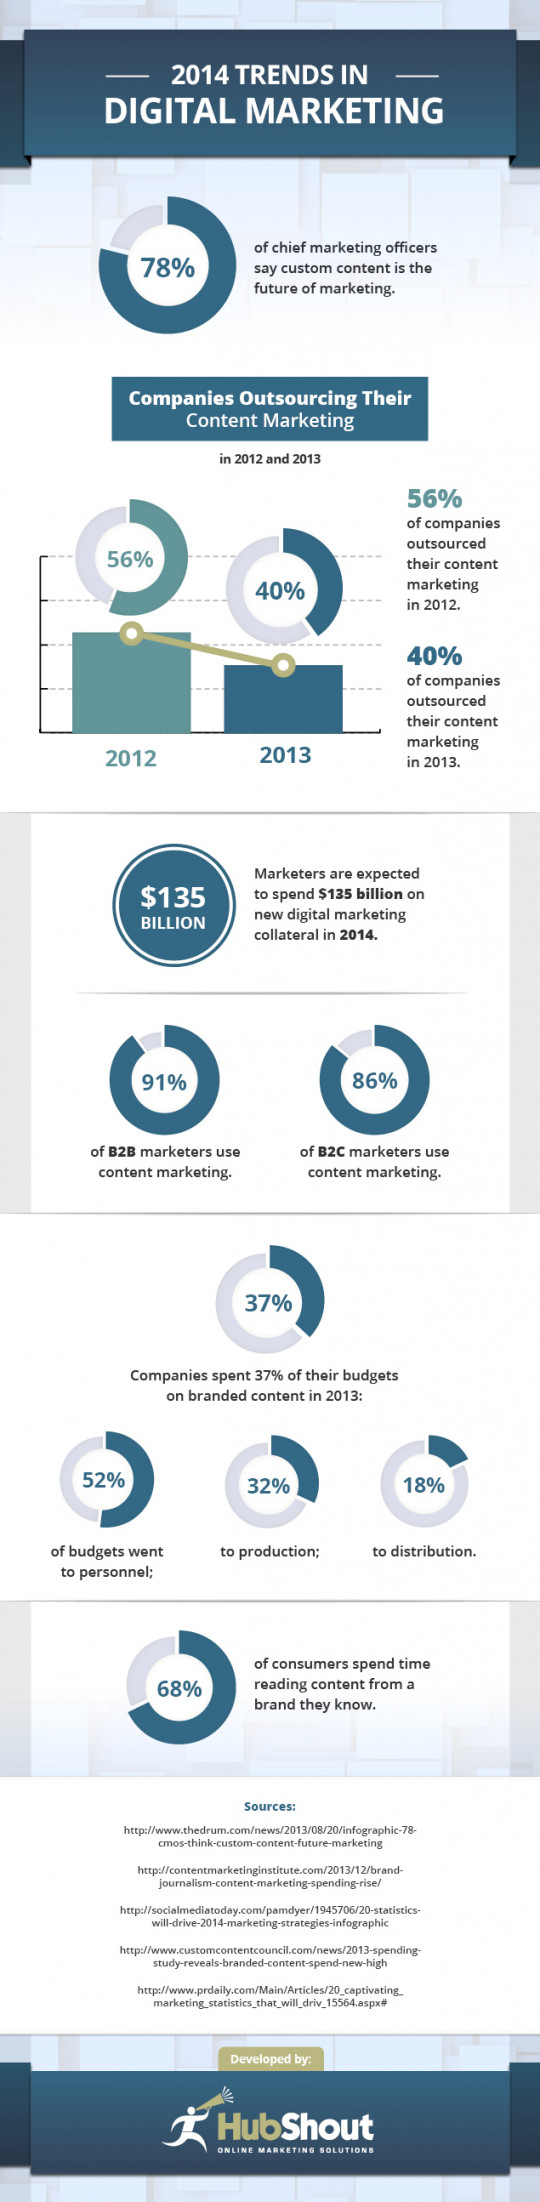 2014 Trends in Digital Marketing